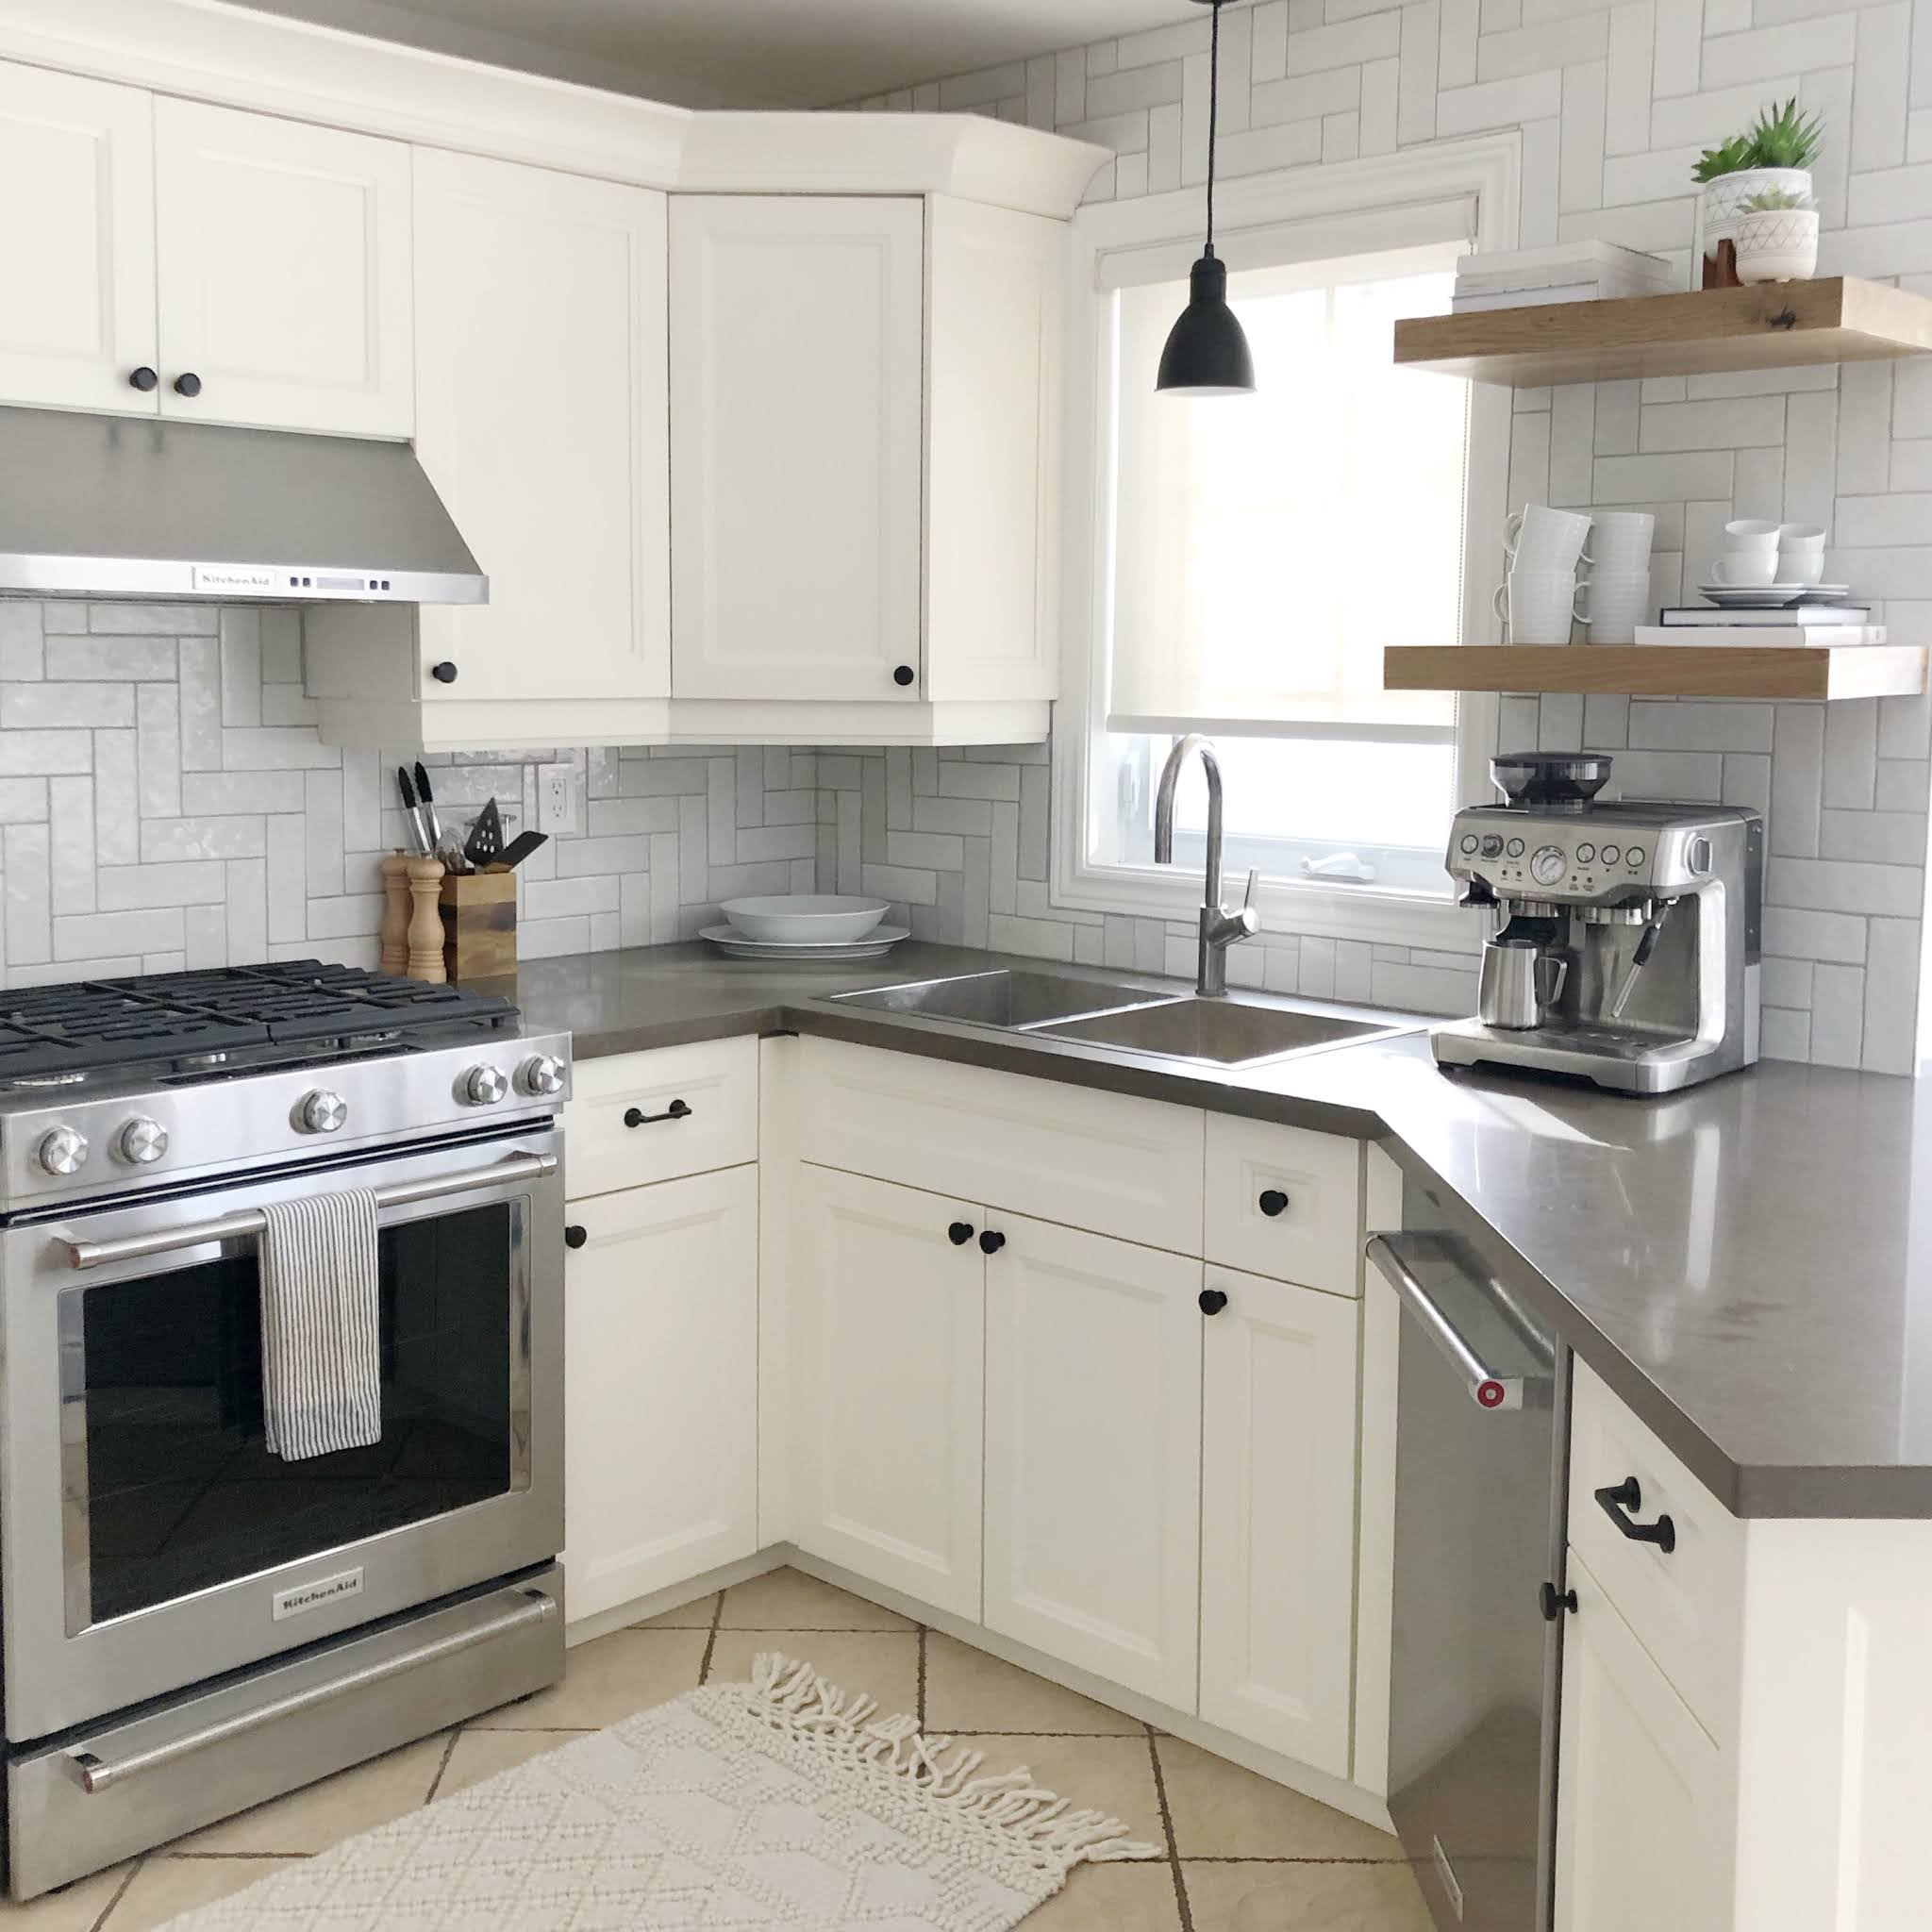 carriage hill project reveal - kitchen after